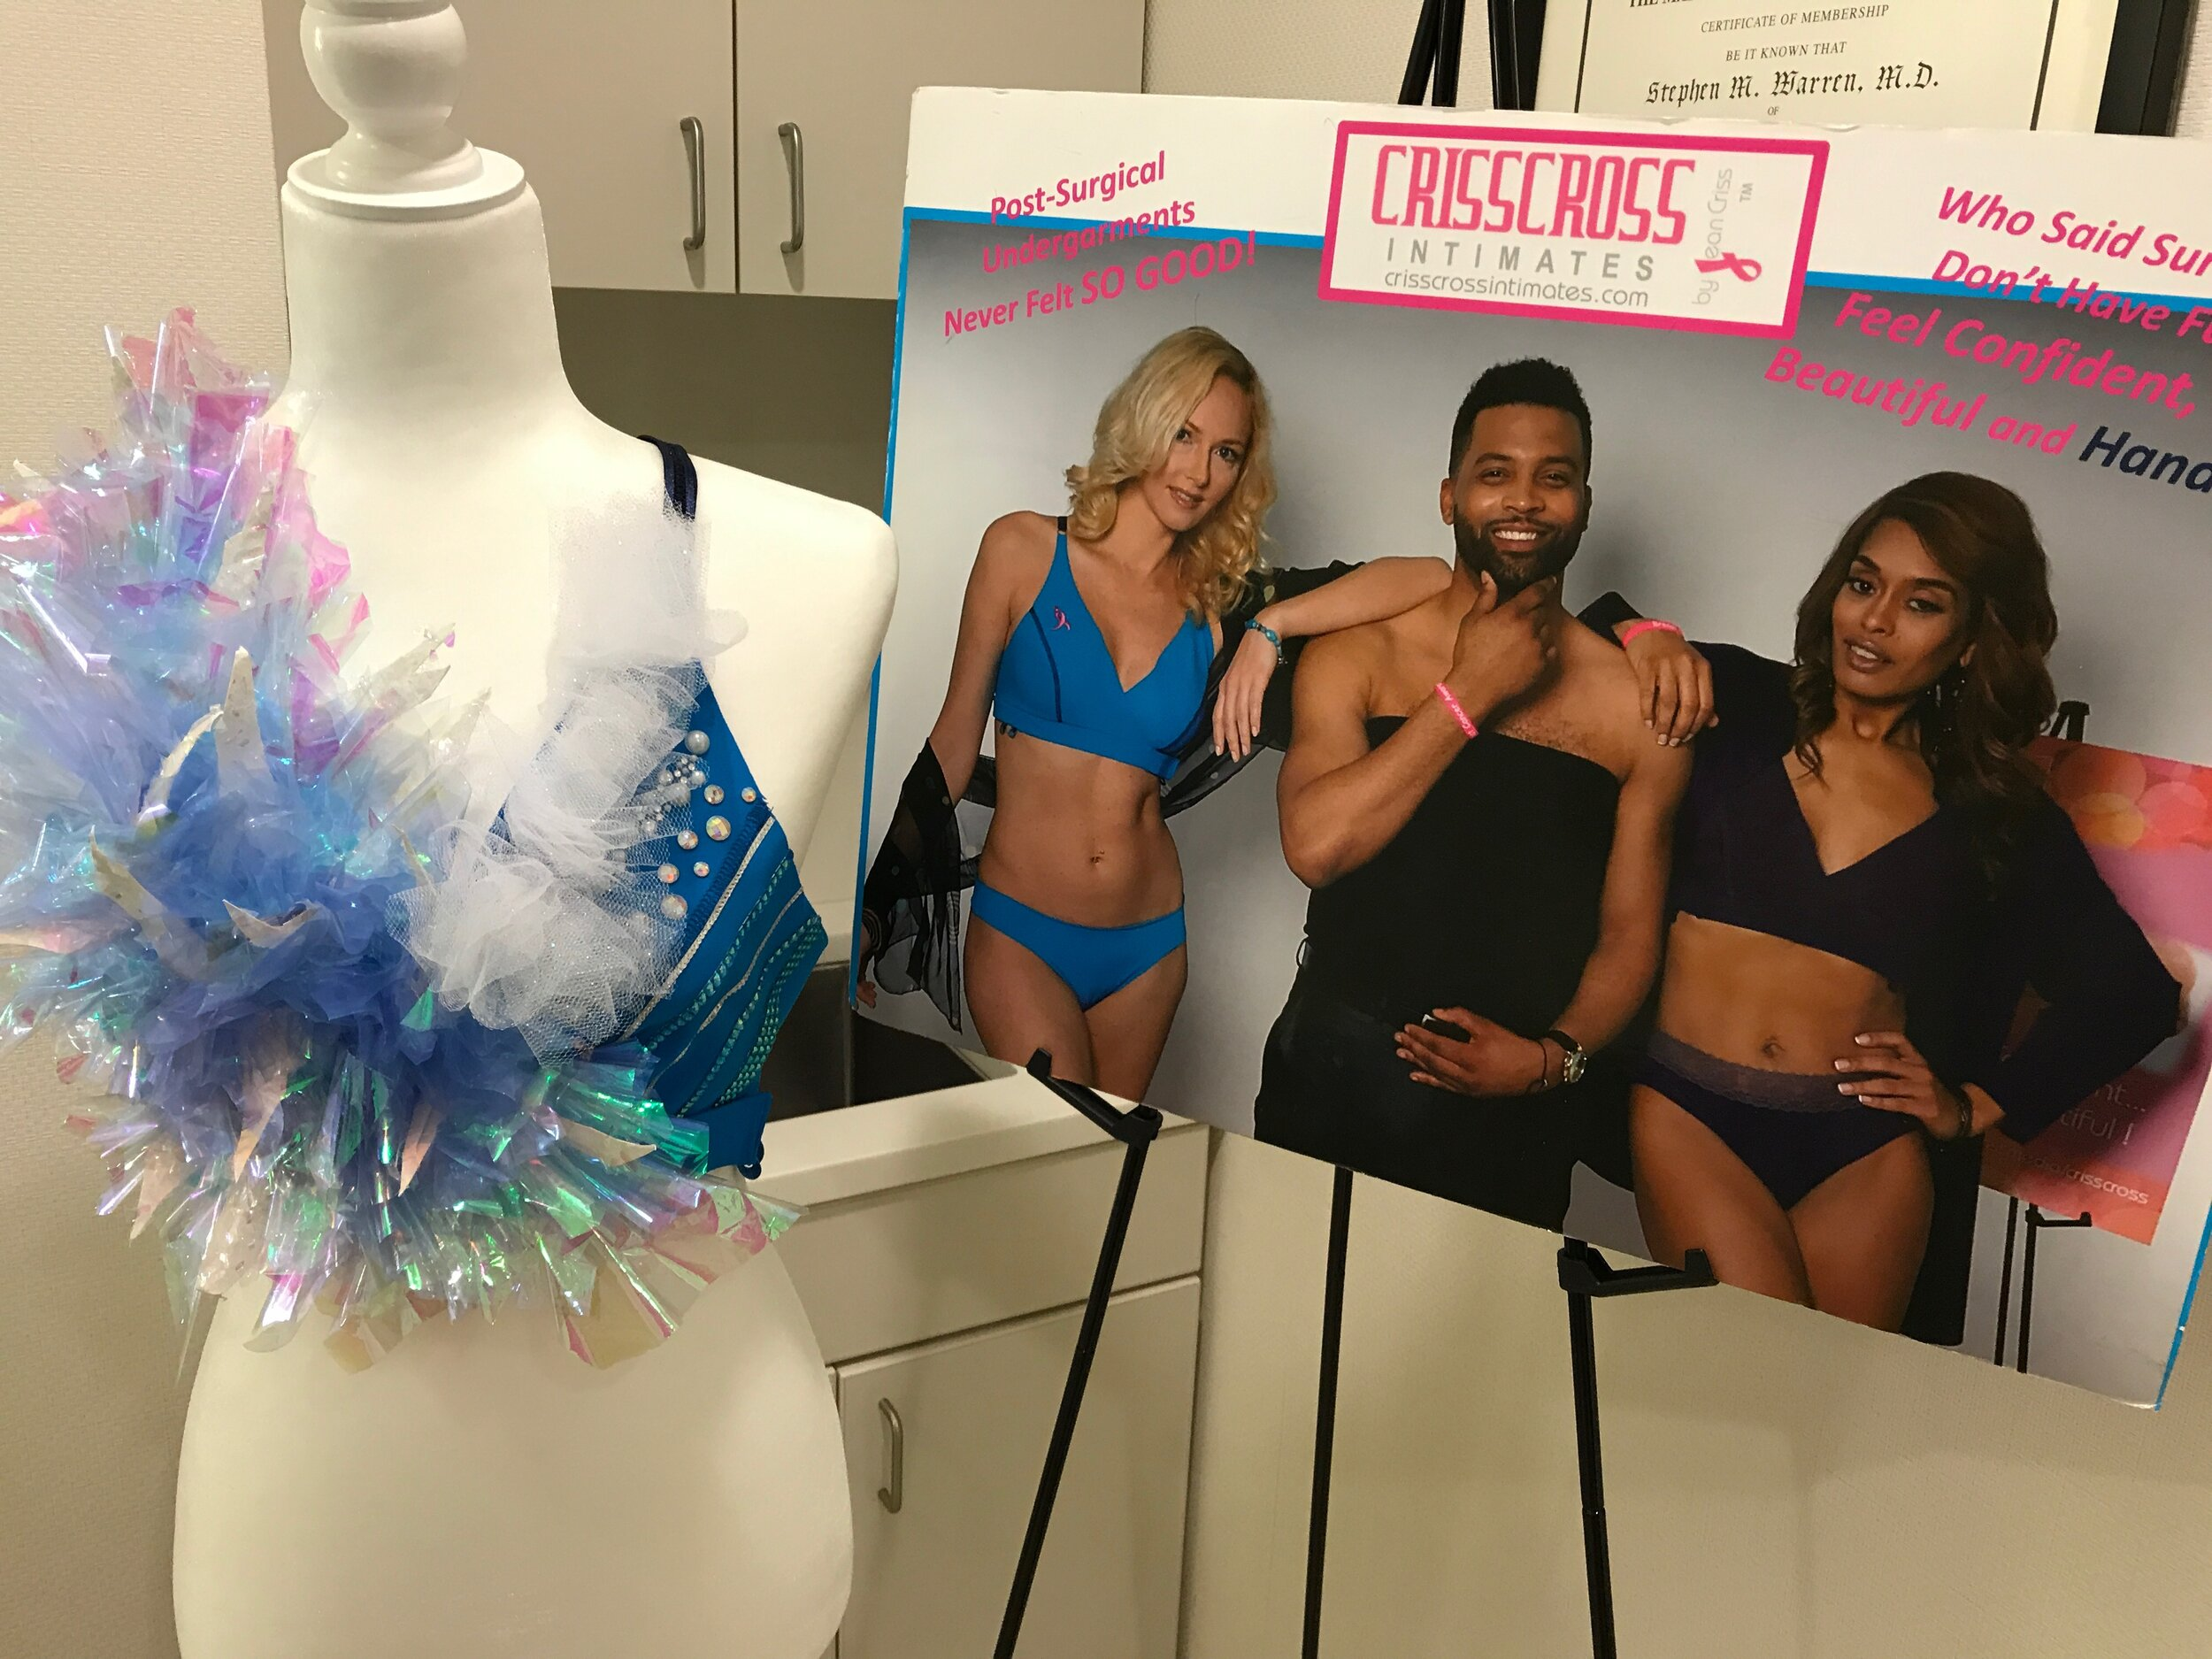 On display throughout the year at Dr. Constance Chen's Park Ave. Office and at the June 2020 FORCE annual Bosom Buddy Fashion Show will be the CRISSCROSS feather and glam Bra shown here. Exciting!